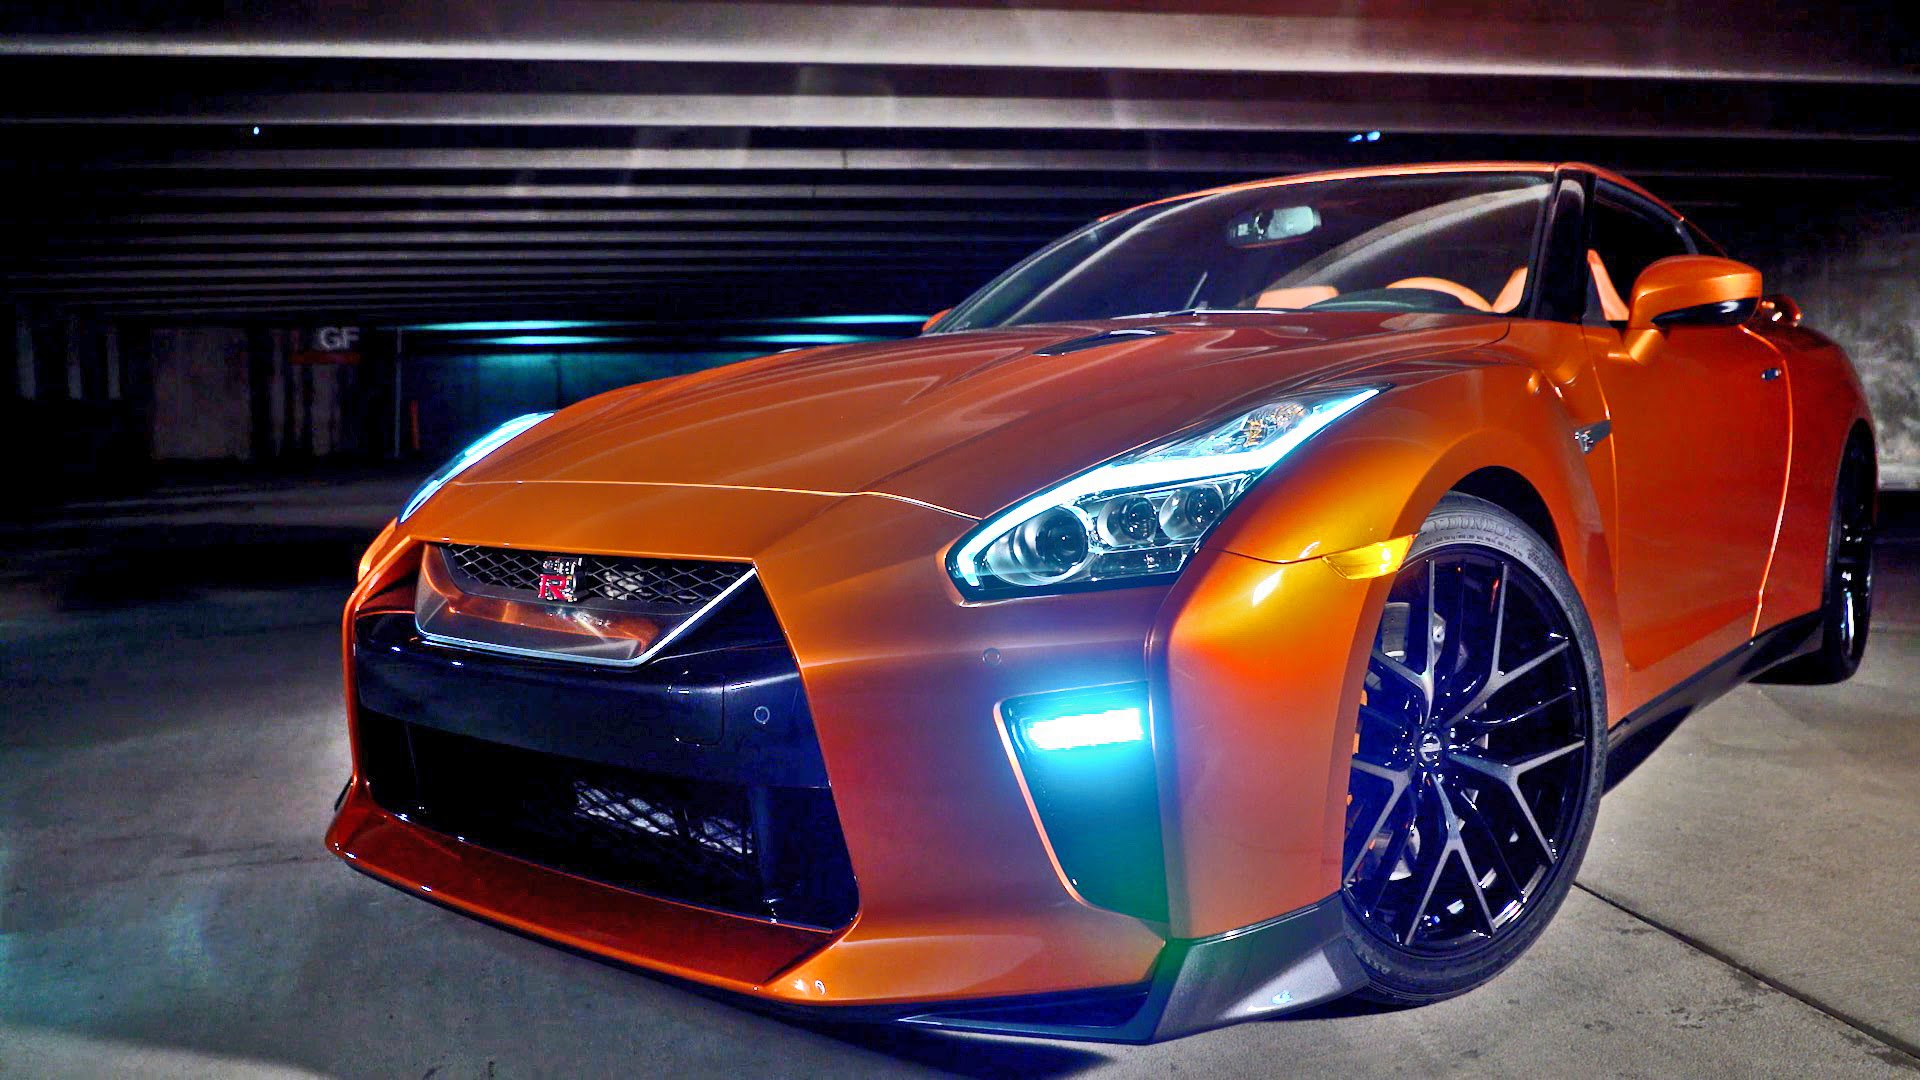 General 1920x1080 Nissan GTR Nissan GT-R NISMO Nissan car vehicle orange cars